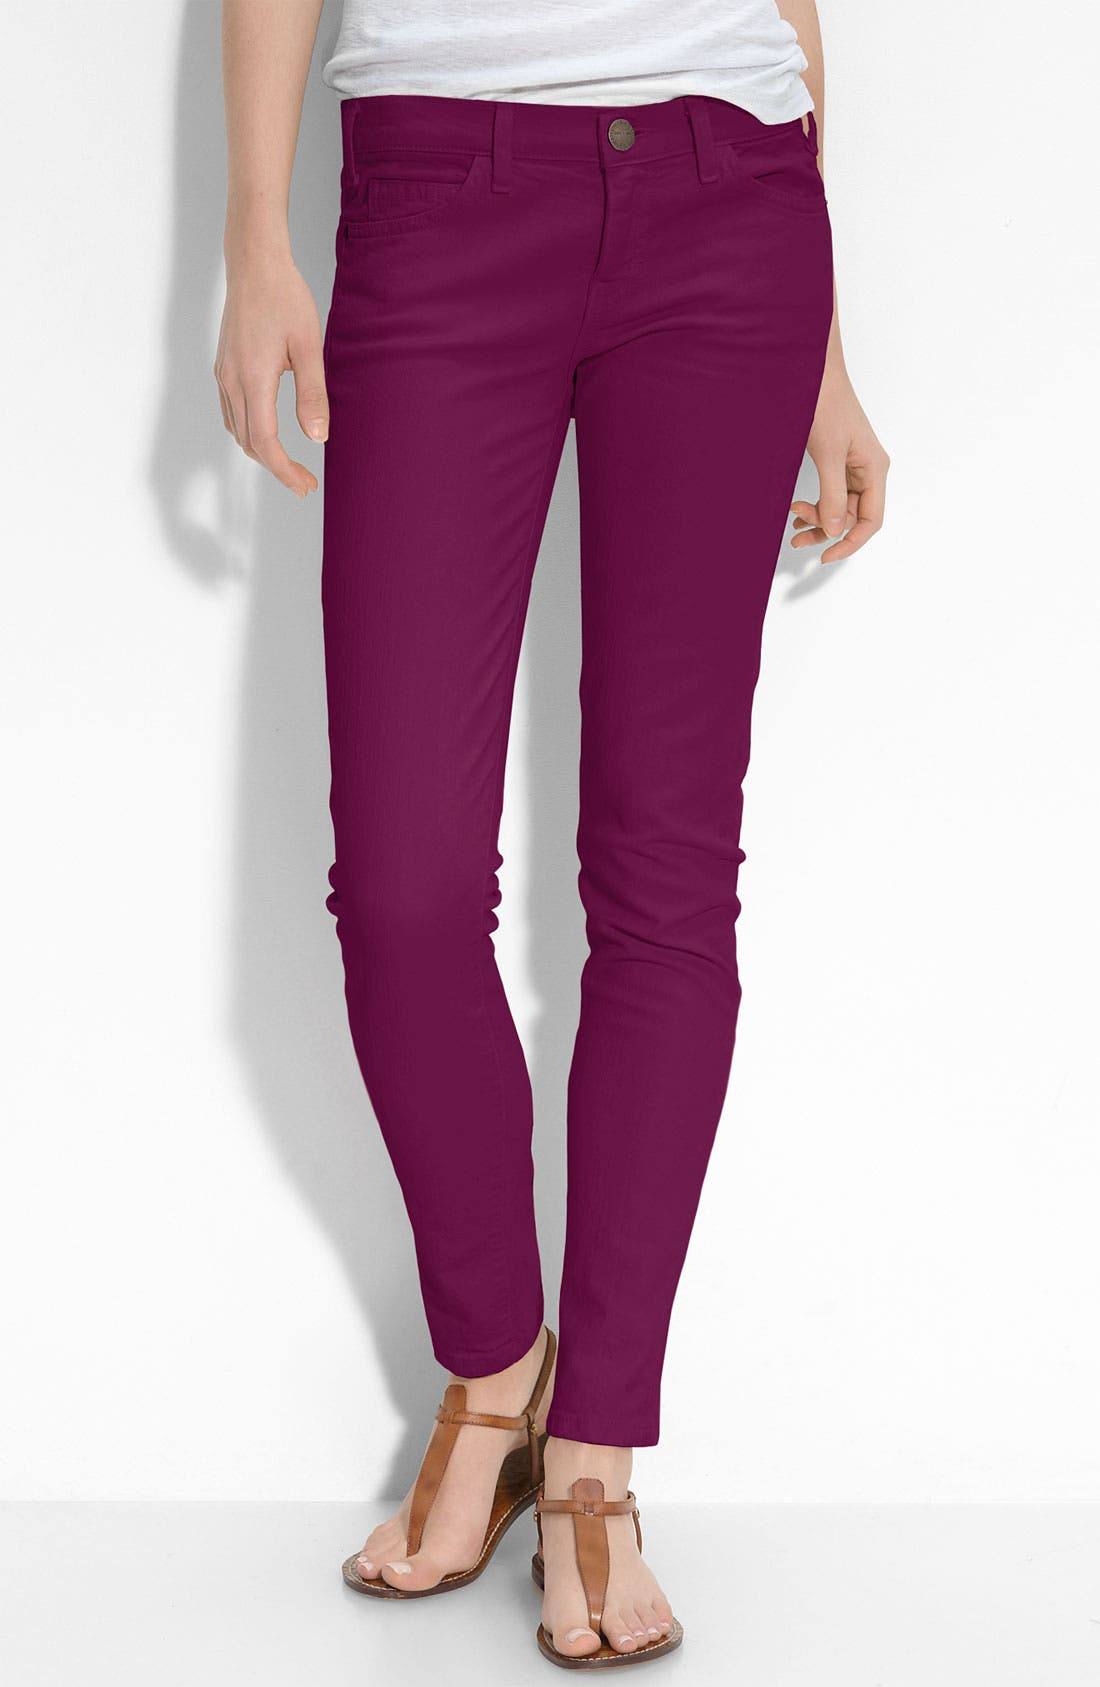 Alternate Image 1 Selected - Current/Elliott Skinny Stretch Ankle Jeans (Purple Wash)